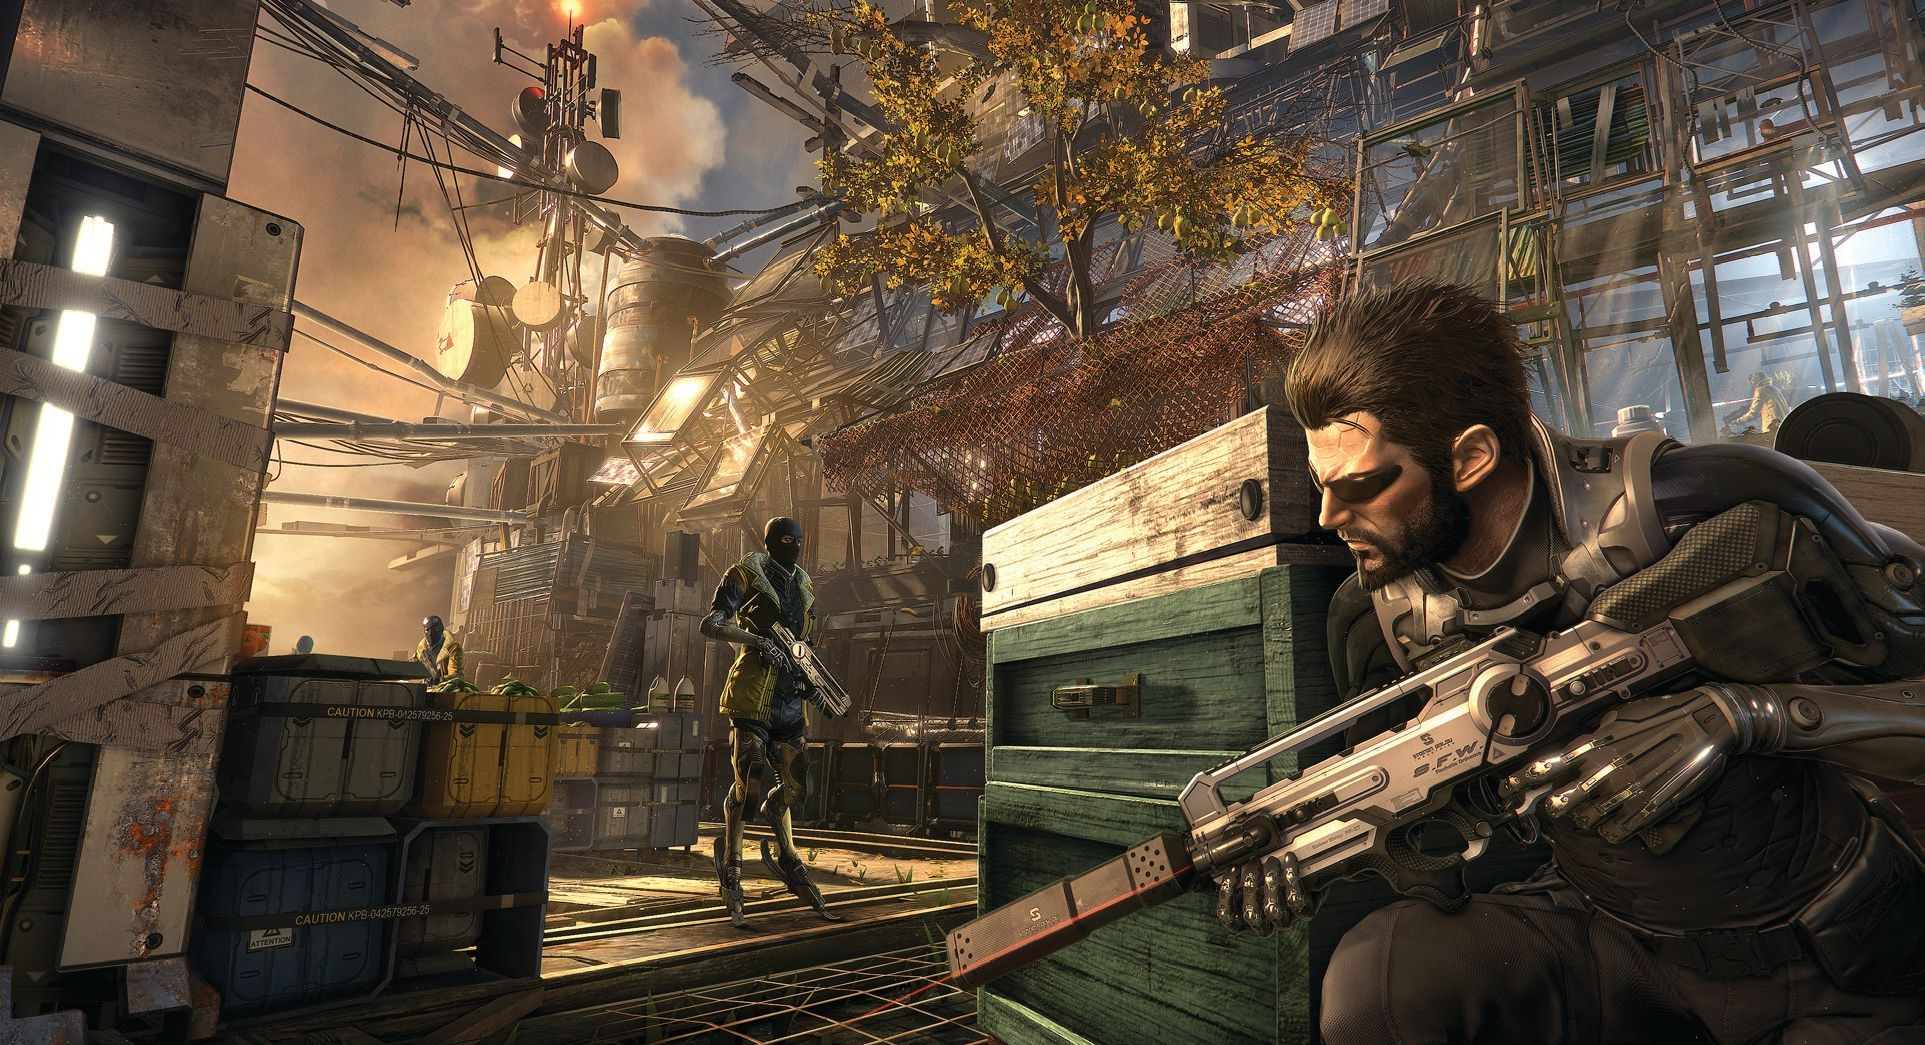 Deus Ex Mankind Divided trailer and screenshots revealed. Jensen is back